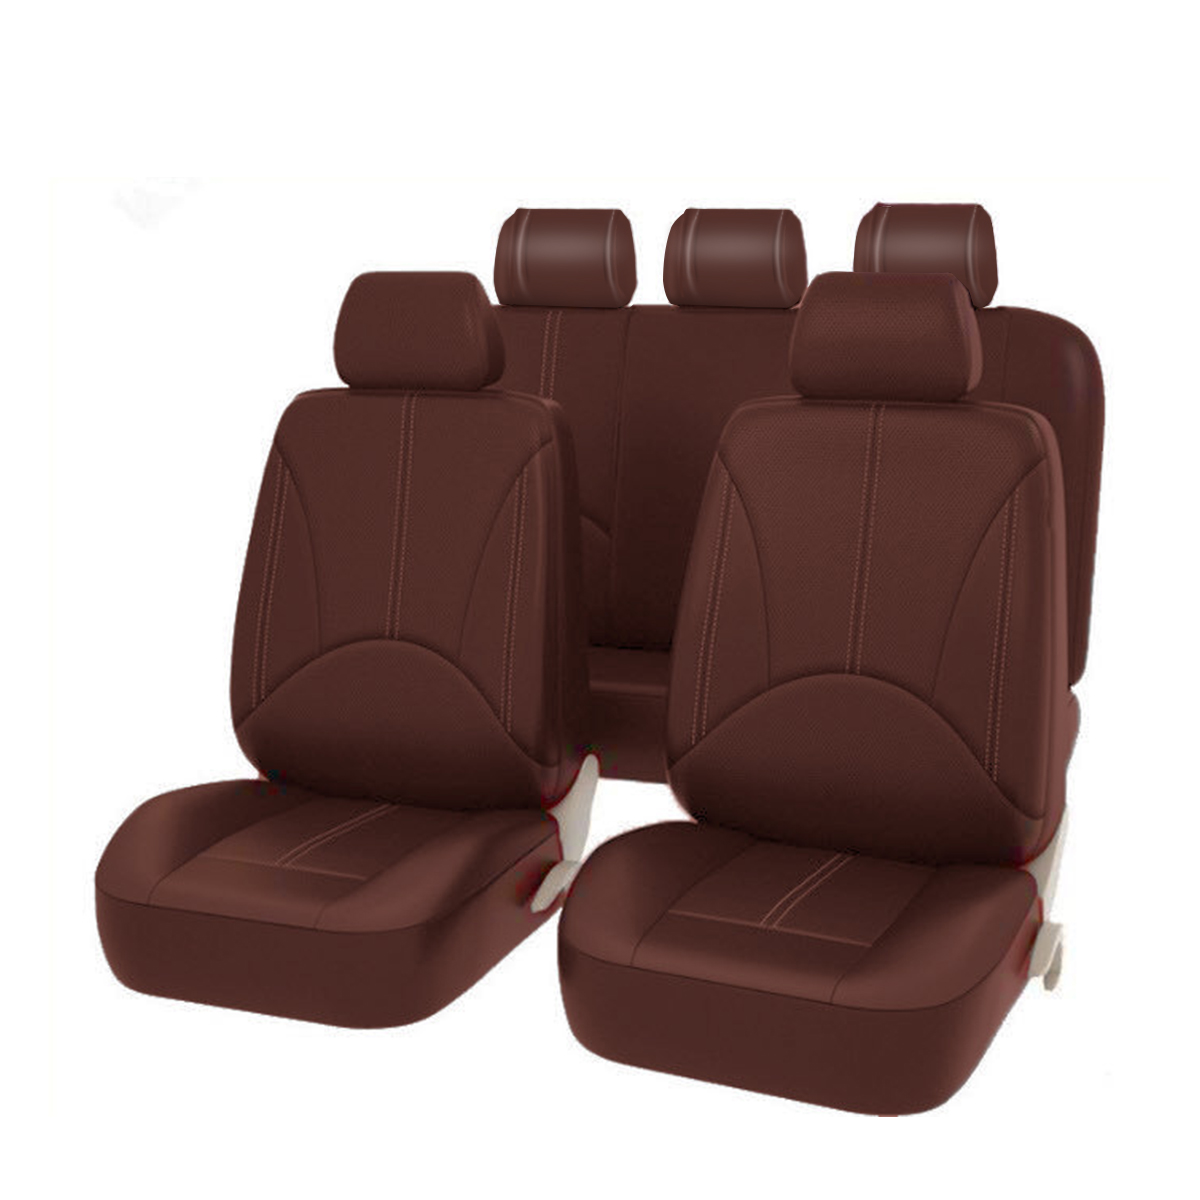 2/5 Seats Black Brown Car Seat Covers Interior Accessories Universal Auto Interior Styling Decoration Protector Car Seat Cover